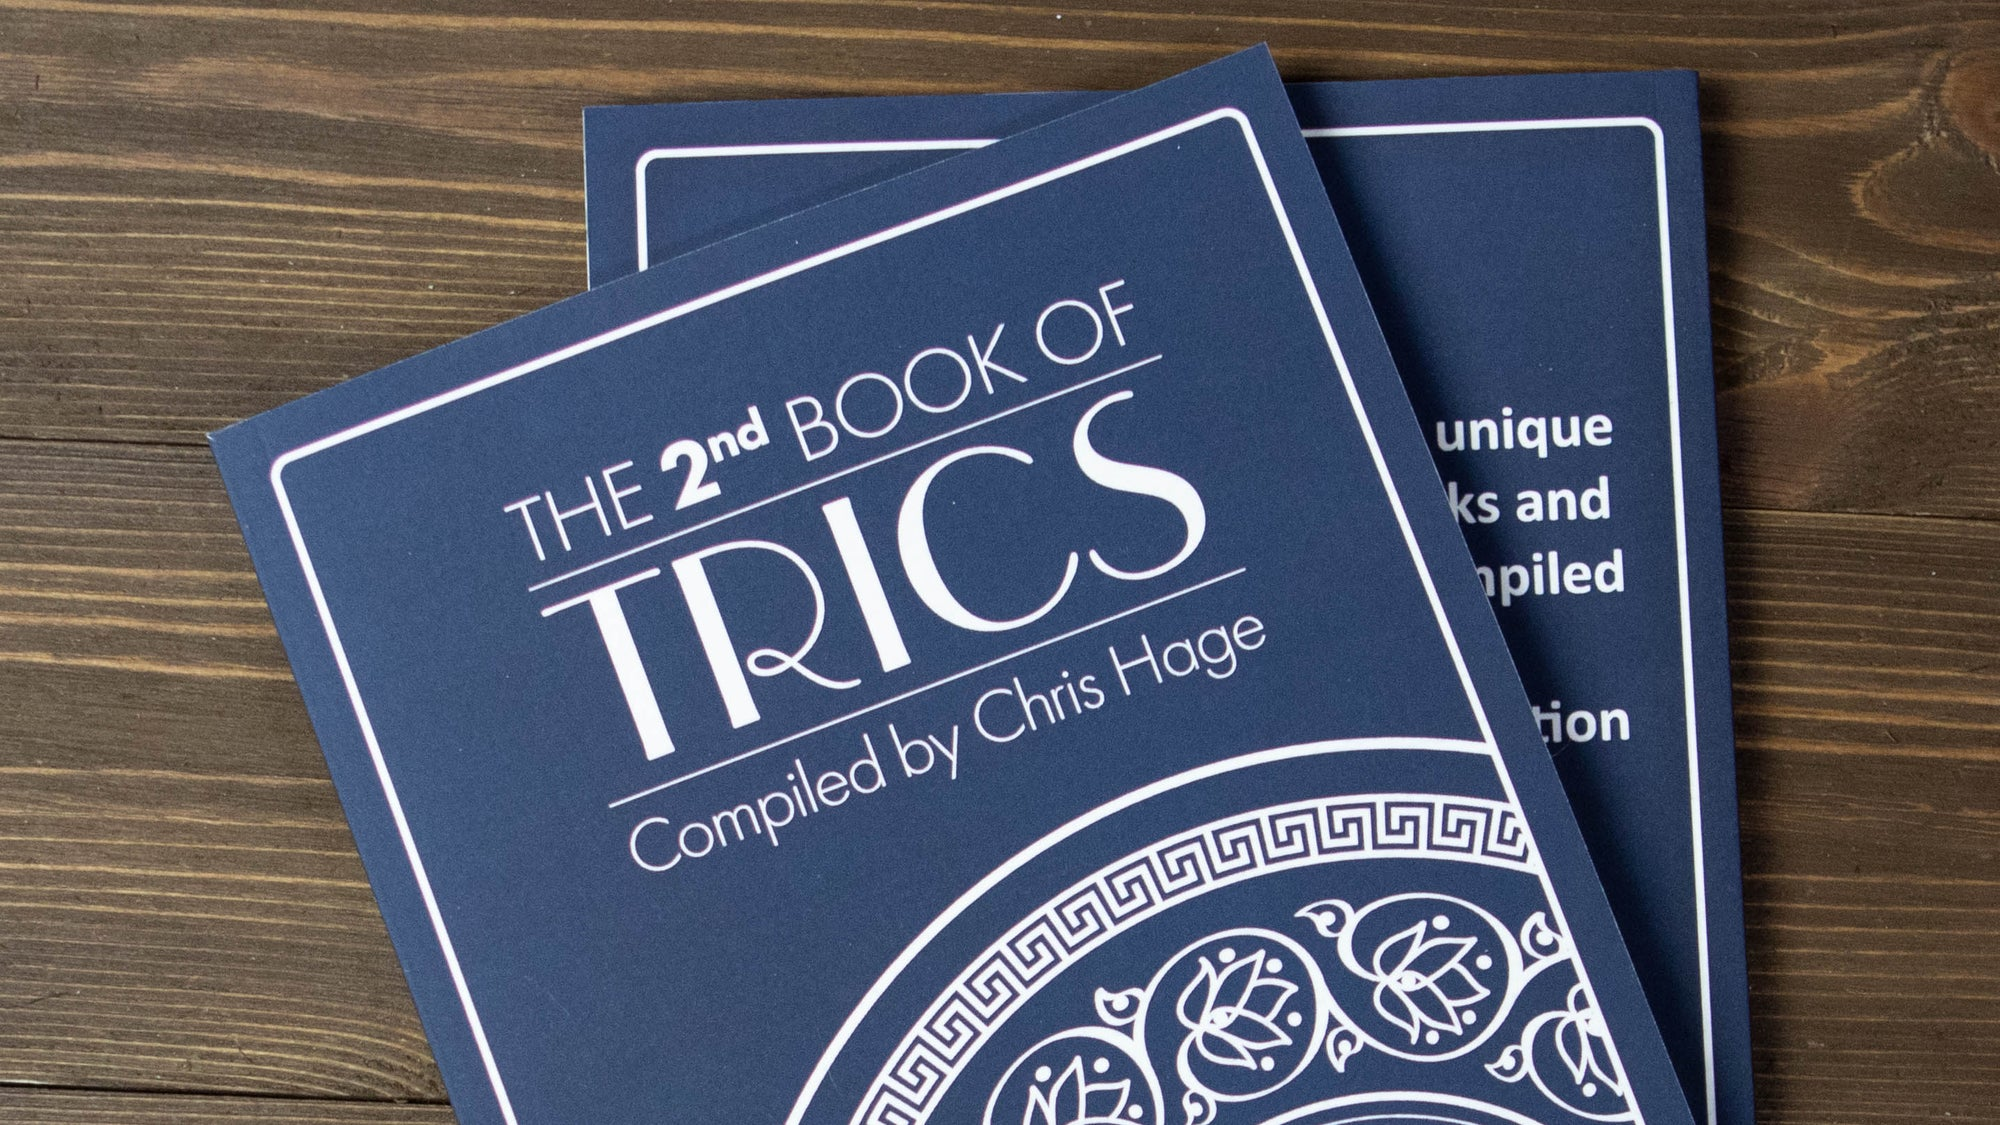 The 2nd Book of TRICS